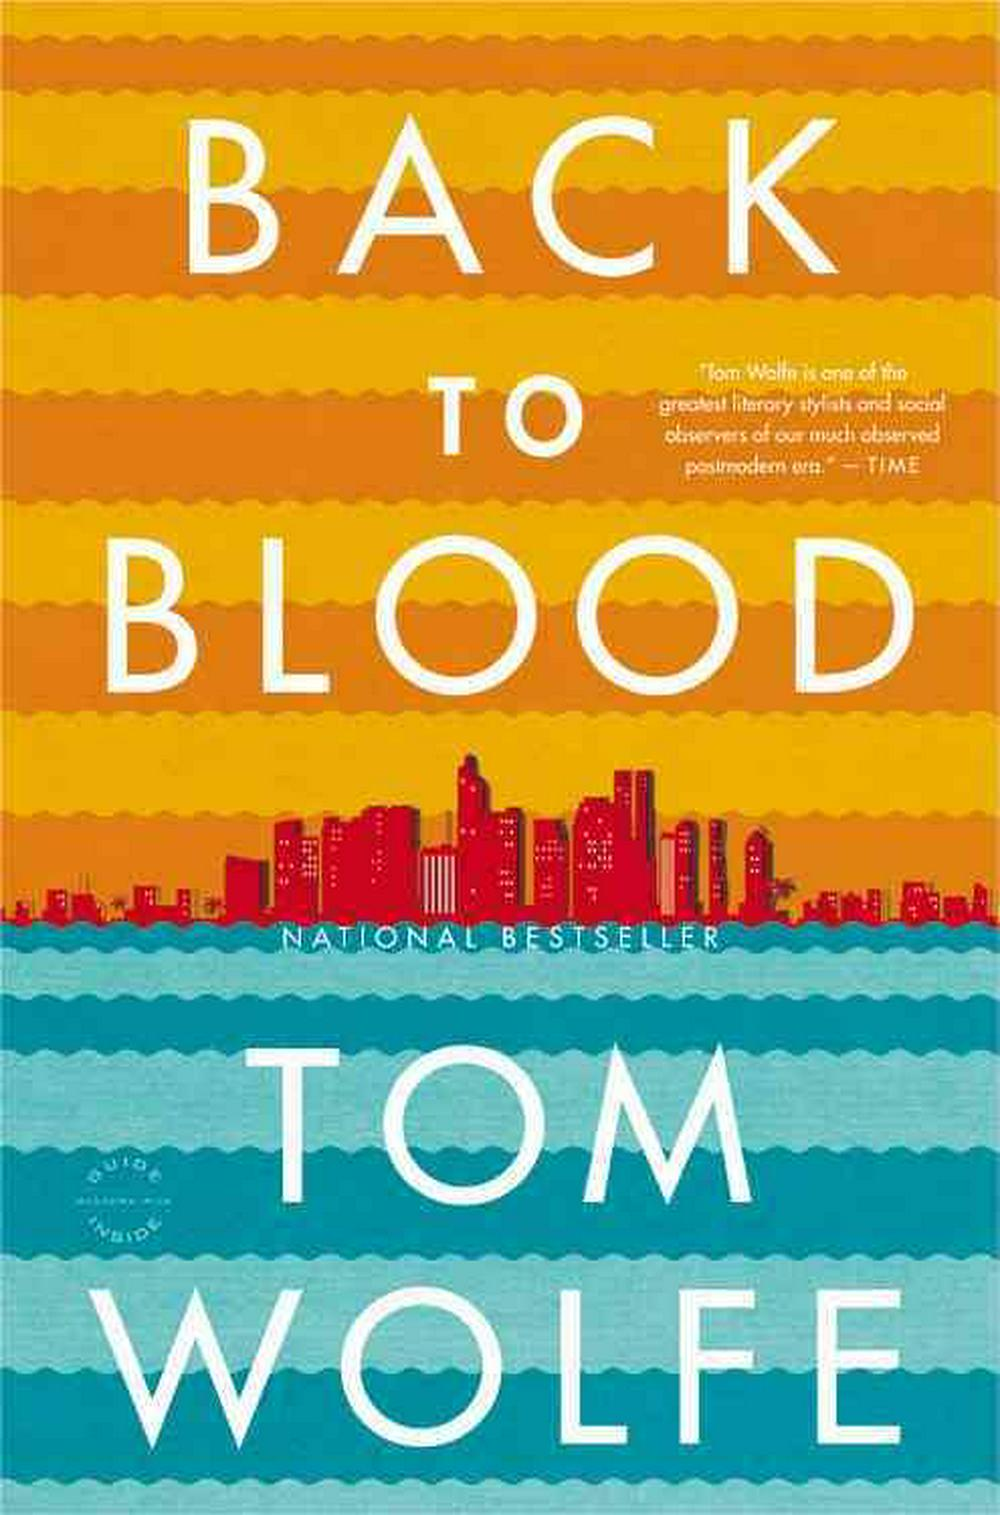 Back to Blood by Tom Wolfe, ISBN: 9780316036337